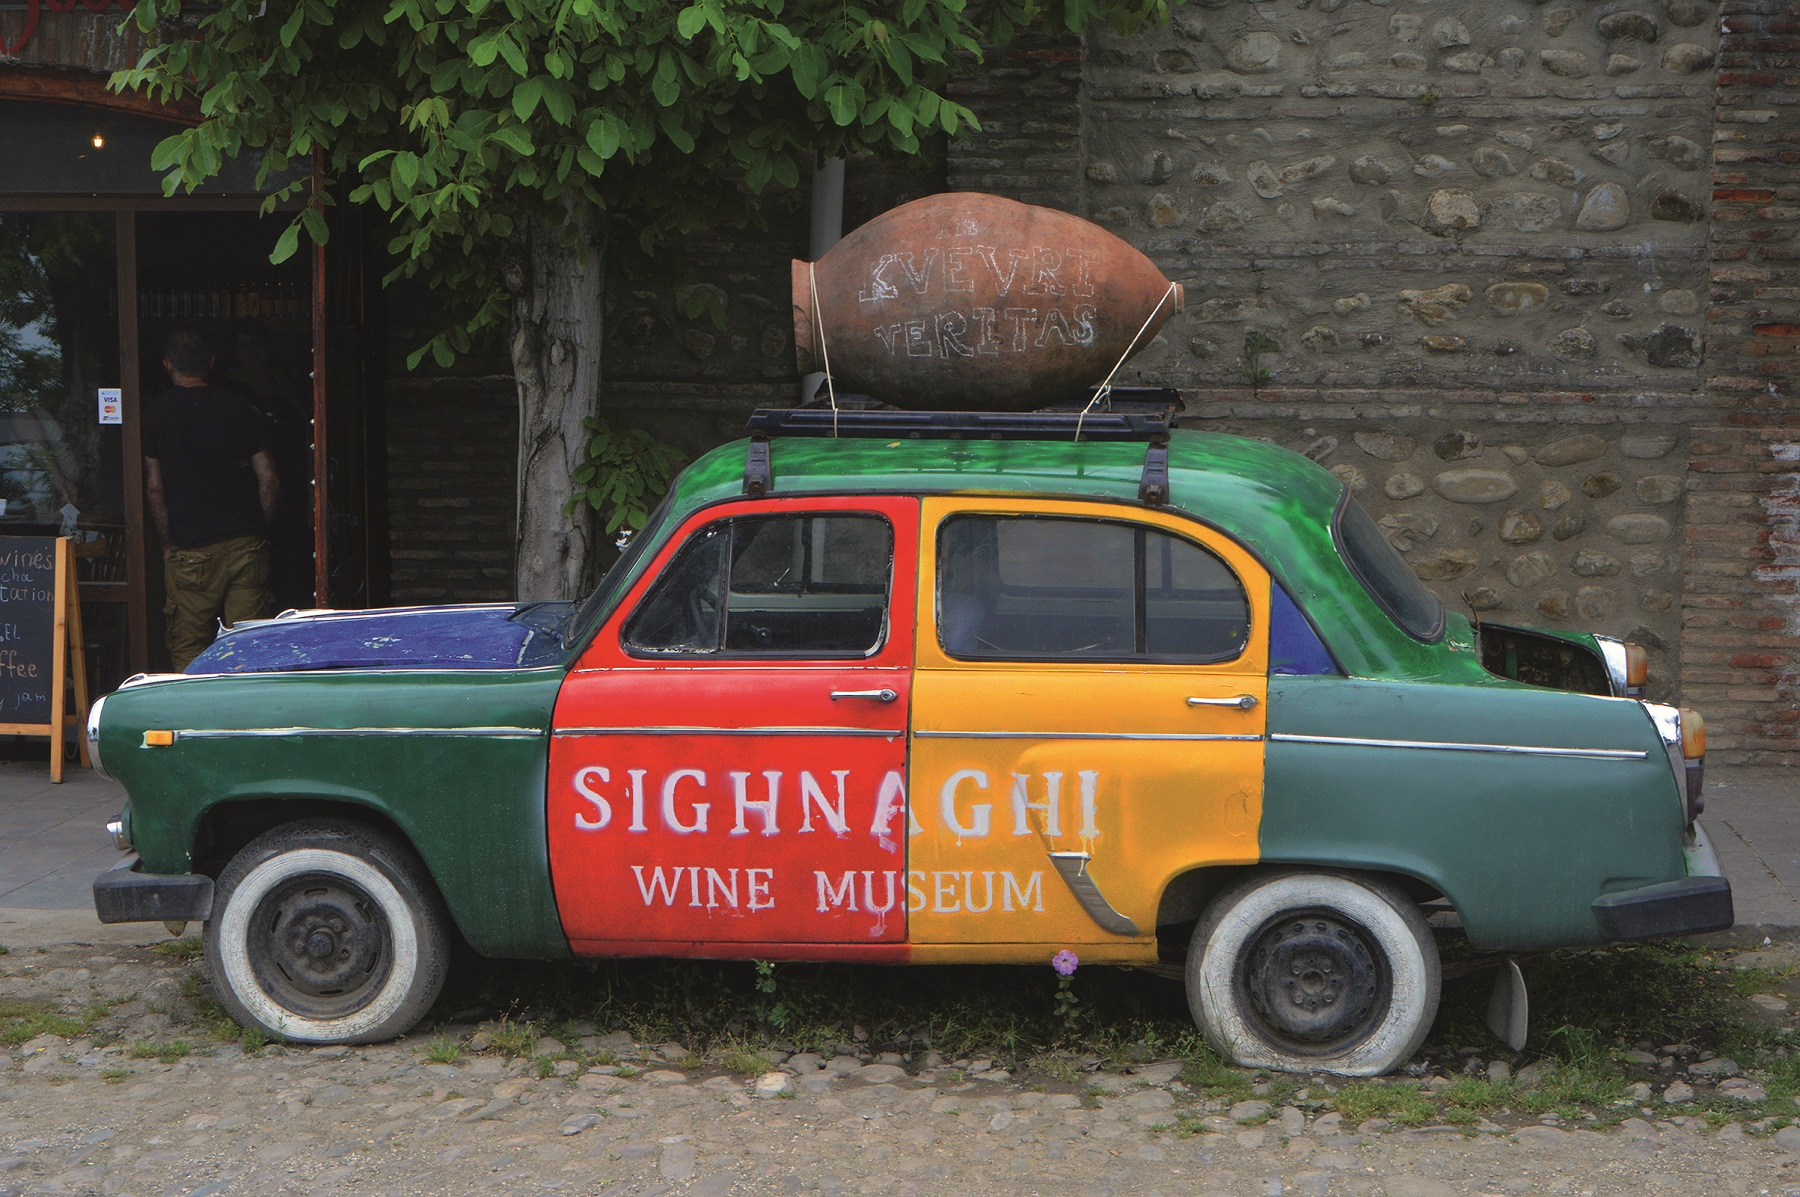 Advertising for the Wine Museum in the city of Sighnaghi (Signagi) in Georgia (Kakheti) on a discarded vintage Soviet car - the region is known for traditional wine growing, recorded on 21.05.2019 | usage worldwide